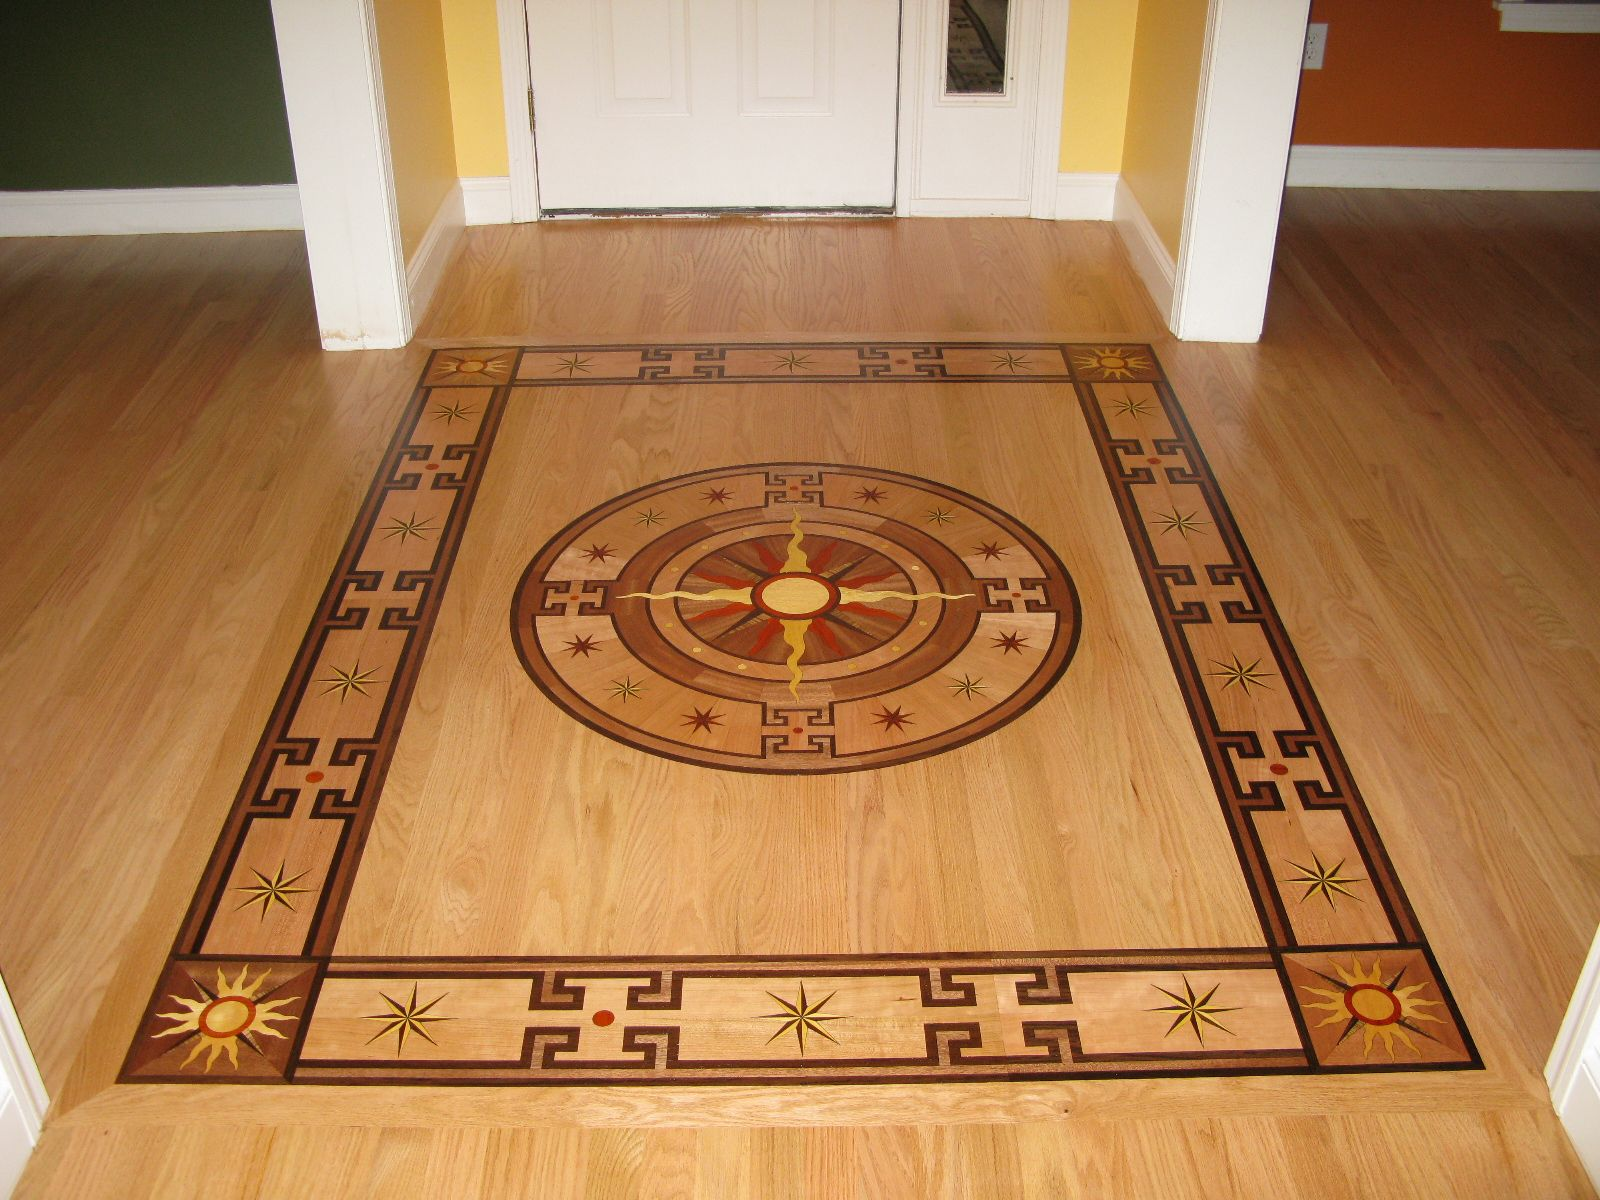 Oshkosh designs del sol wood border corner medallion for Hardwood floor borders ideas